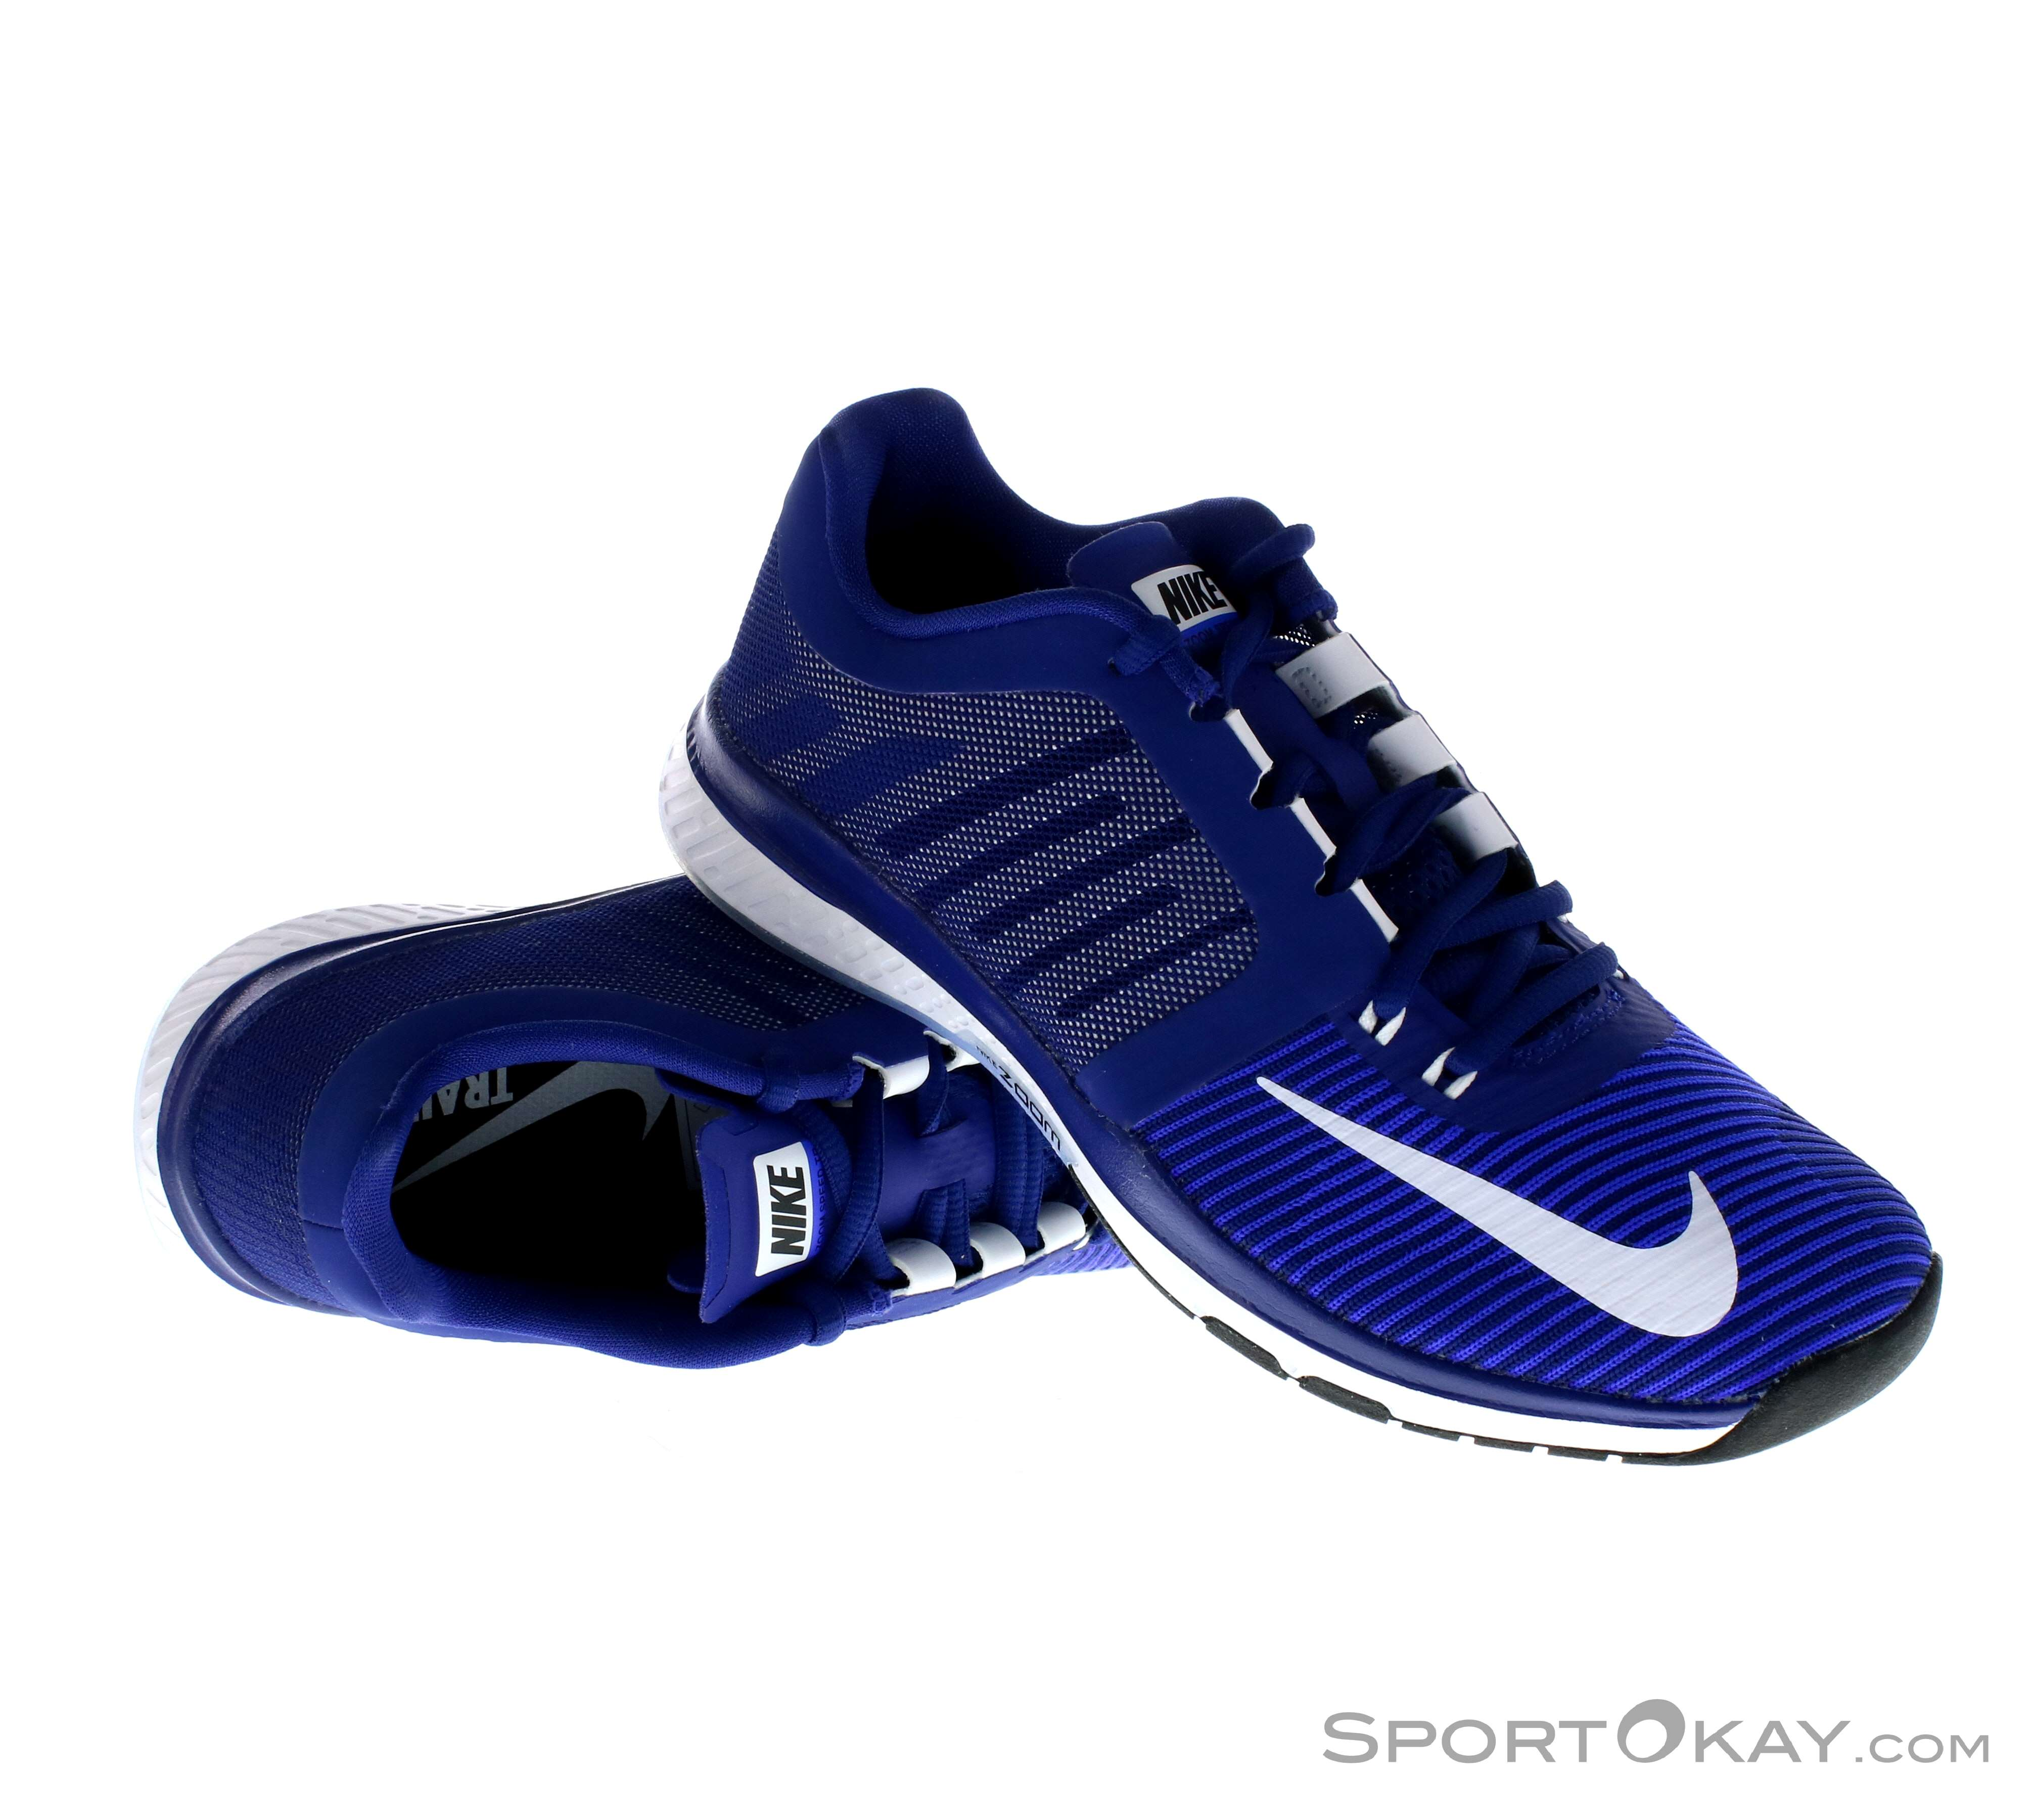 best service ec1a6 c9994 Nike Zoom Speed TR Mens Fitness Shoes, Nike, Blue, , Male, 0026